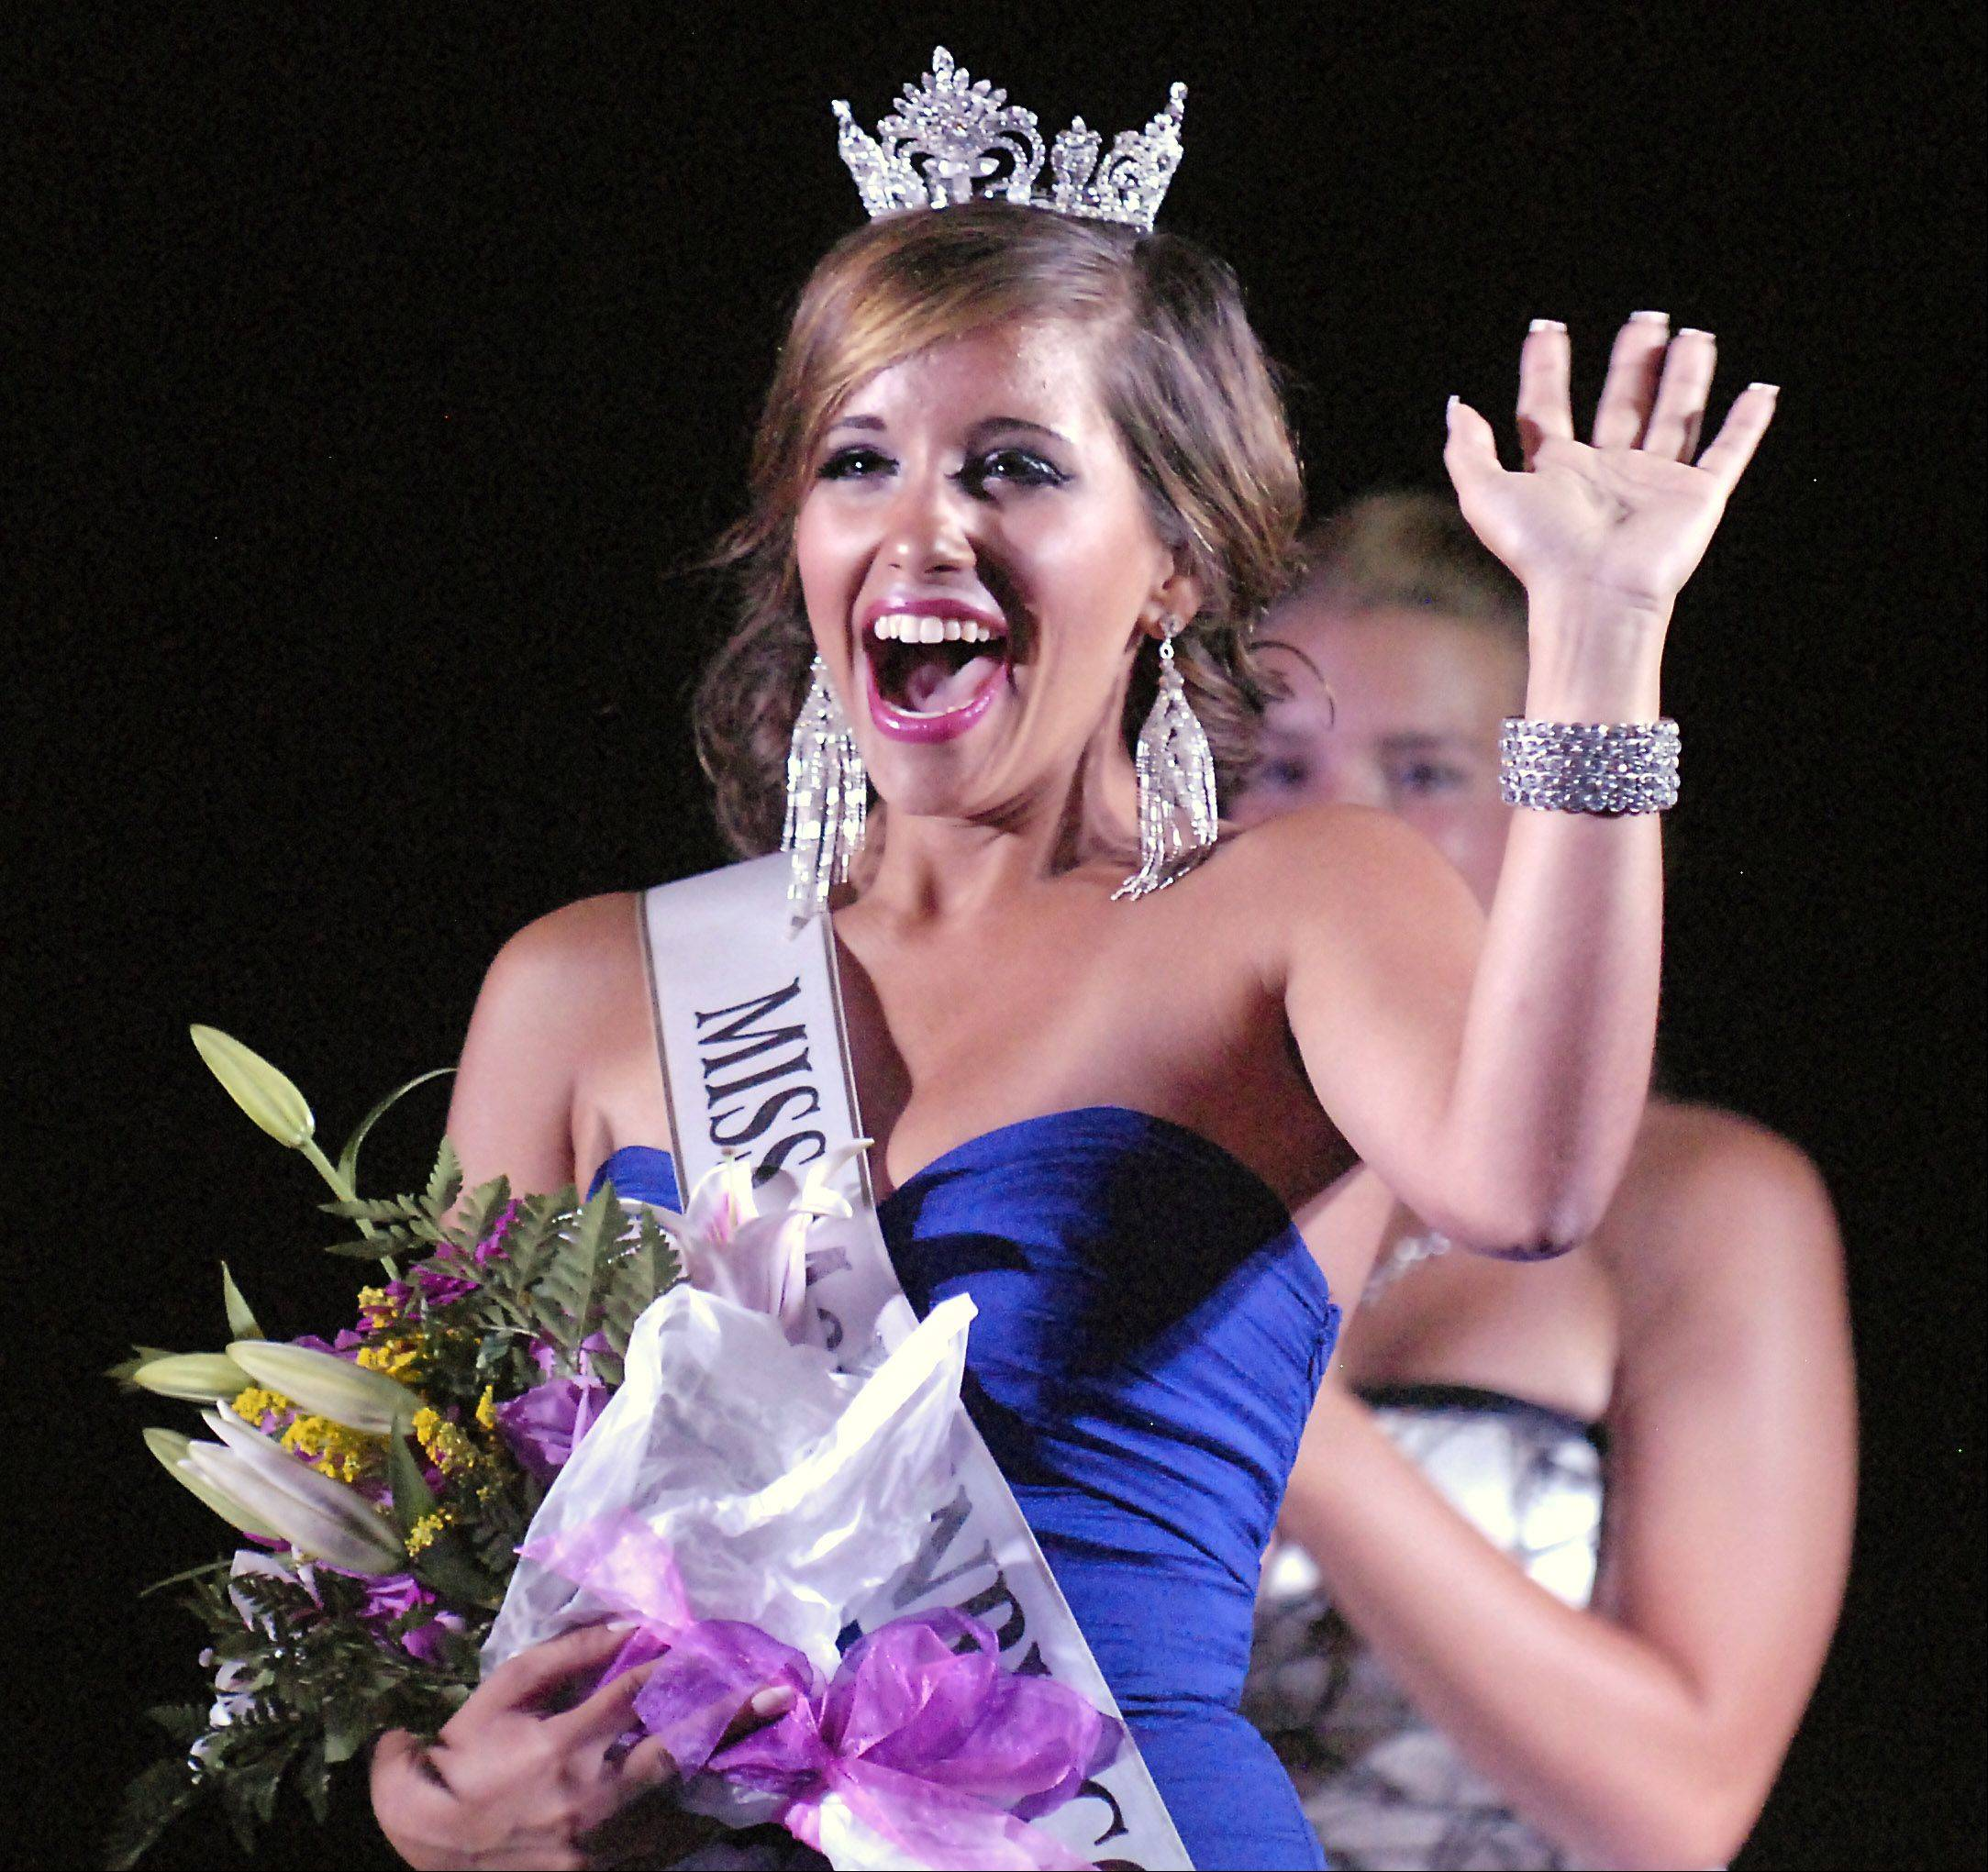 Samantha Bolet, 17, of Lake in the Hills wins the crown in the 2012 Miss McHenry County Queen pageant.